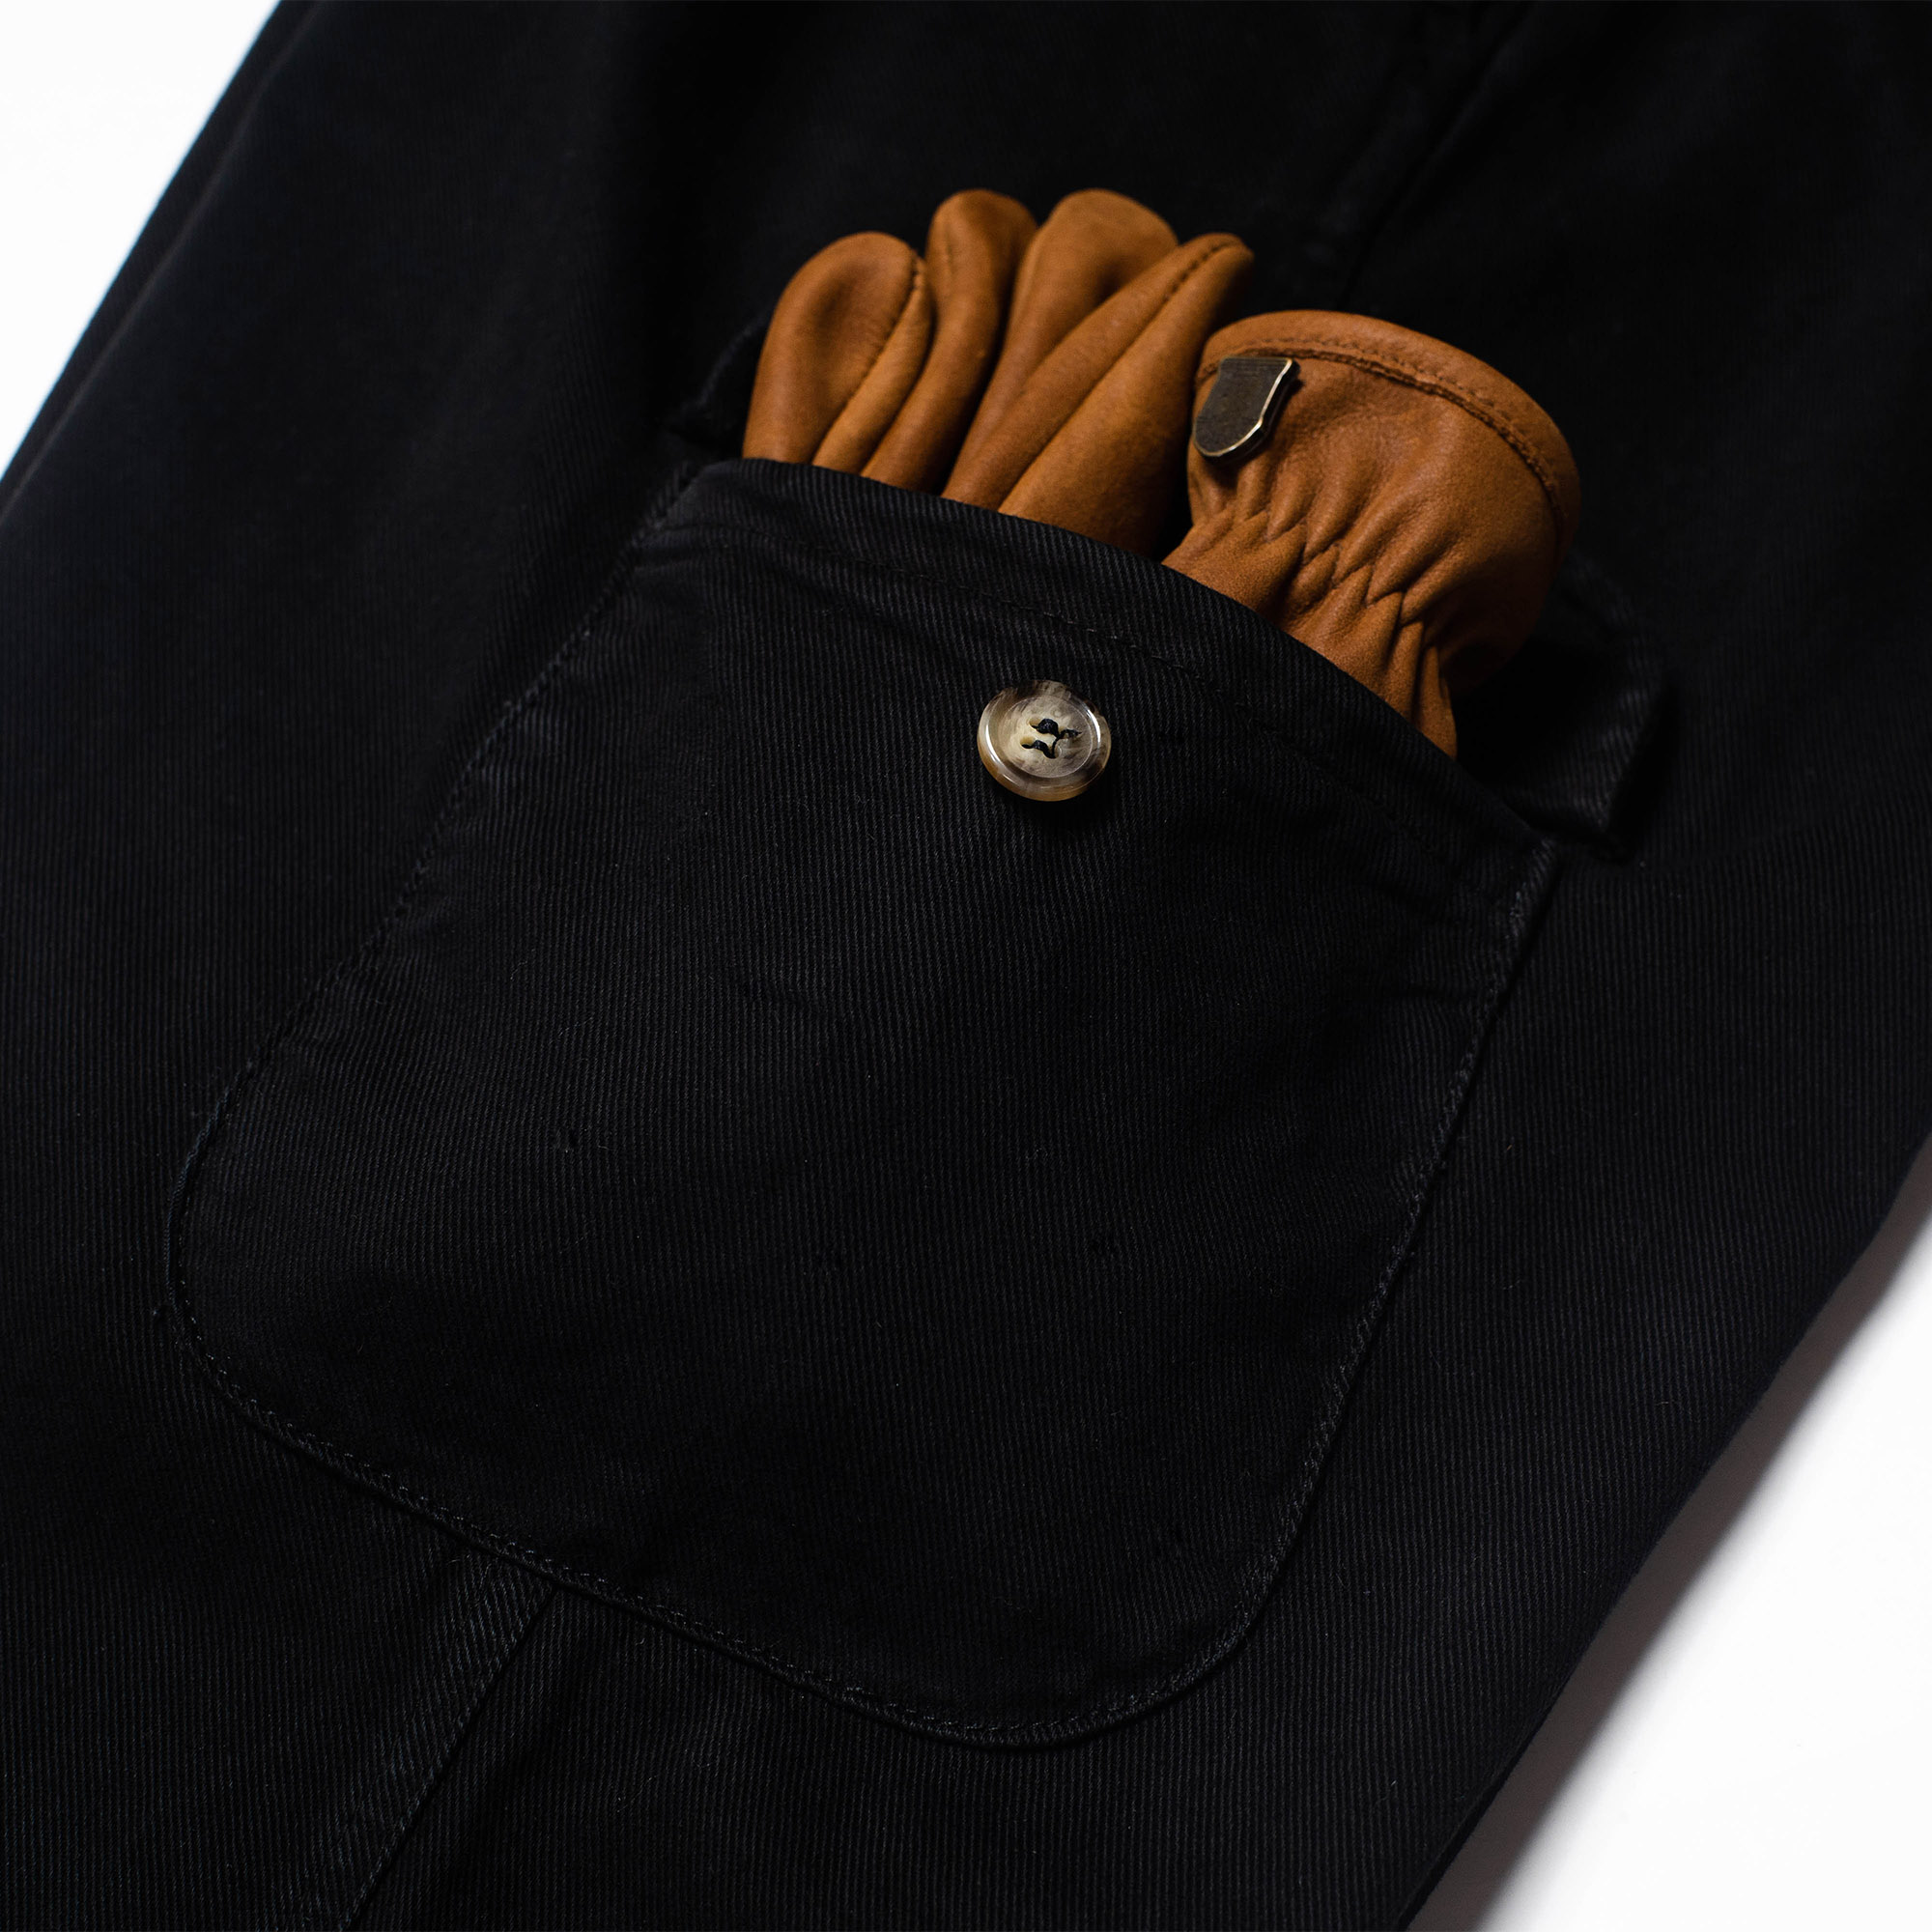 shangri-la-heritage-explorator-black-cotton-twill-pants-still-life-cargo-pocket-gloves